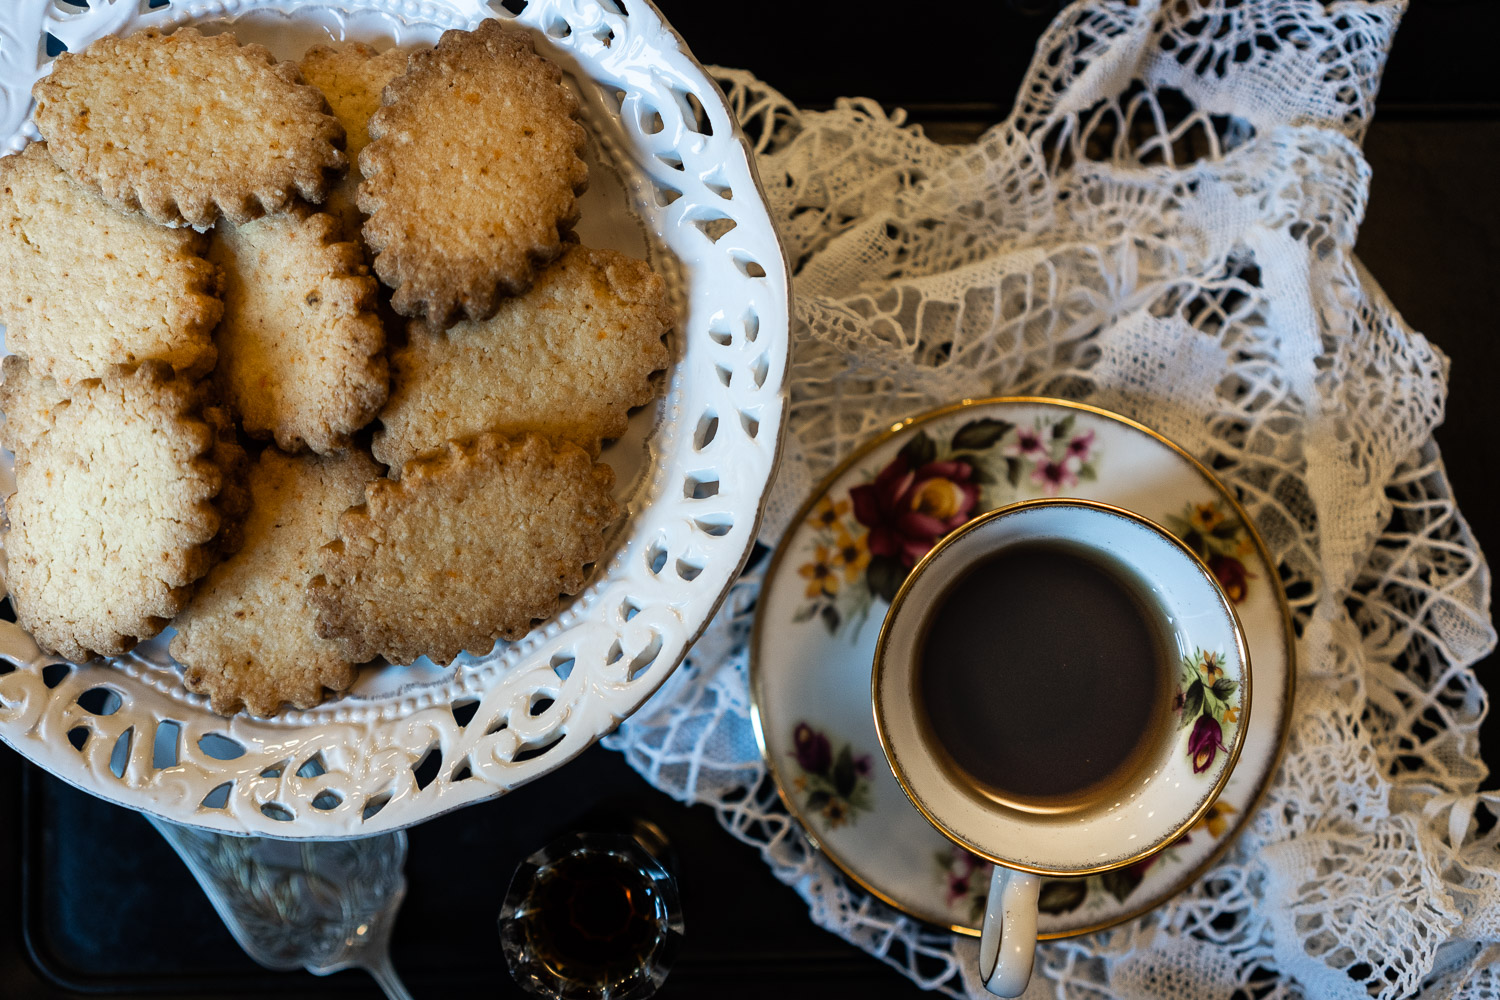 Ginger-and-Chilli-Biscuits-served-with-Masala-Chai-04043.jpg